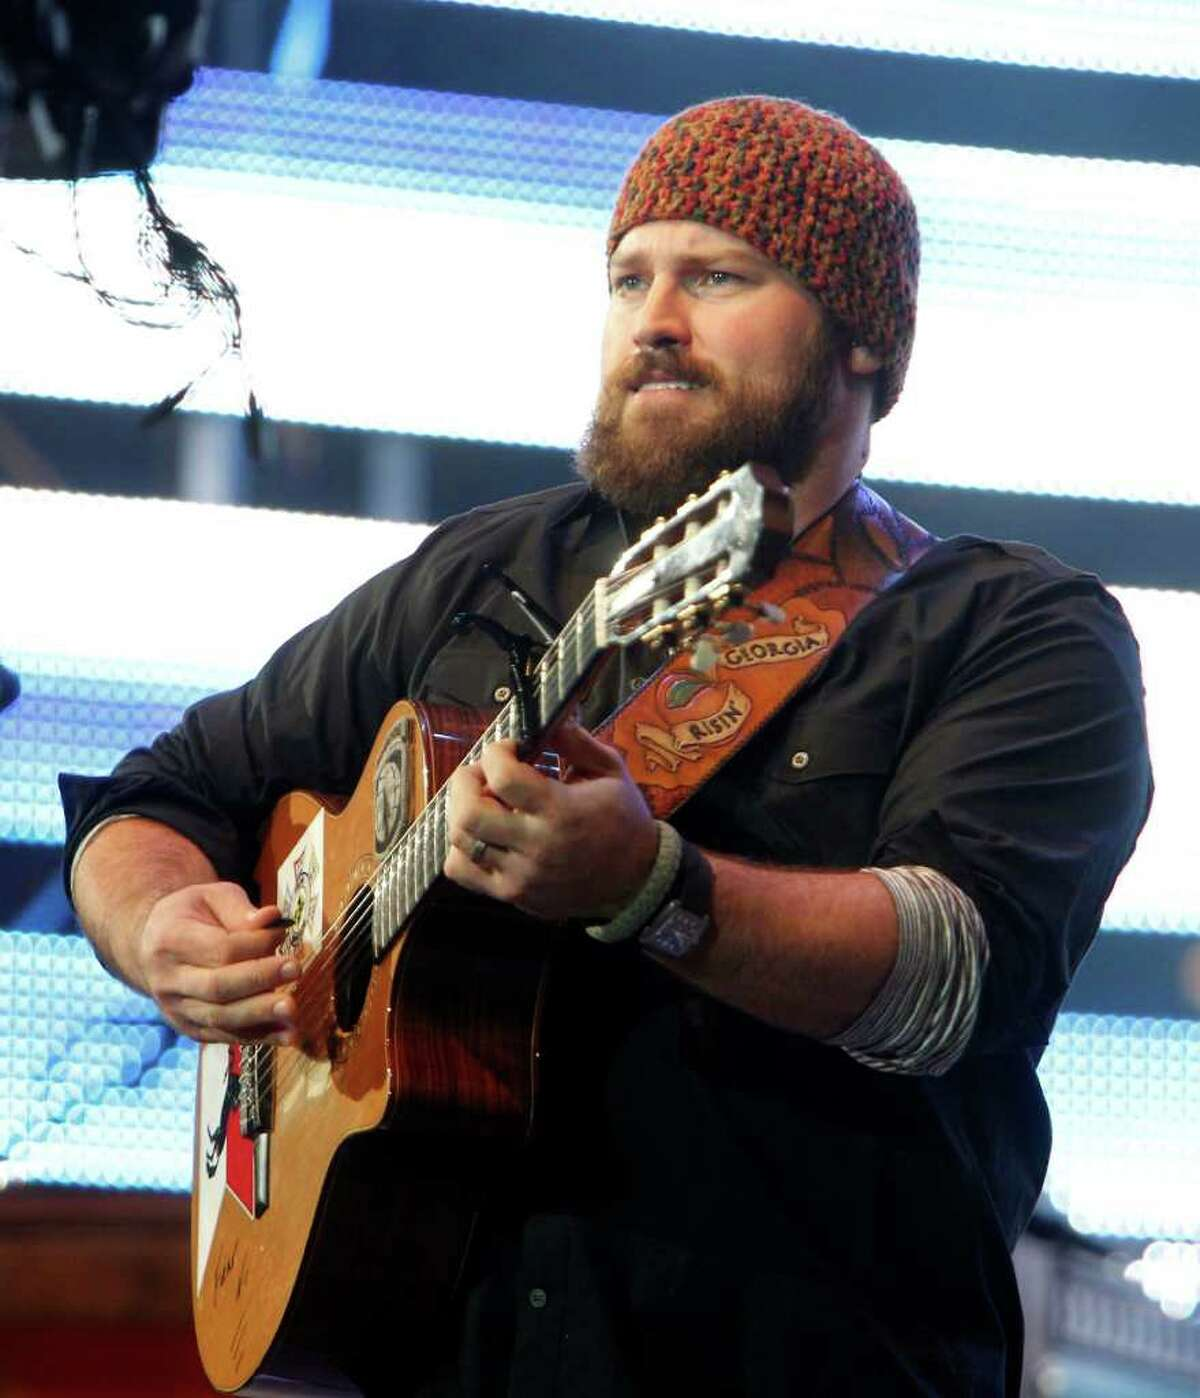 Zac Brown with the Zac Brown Band performs in concert at the Houston Livestock Show and Rodeo at Reliant Park Monday, March 12, 2012, in Houston.